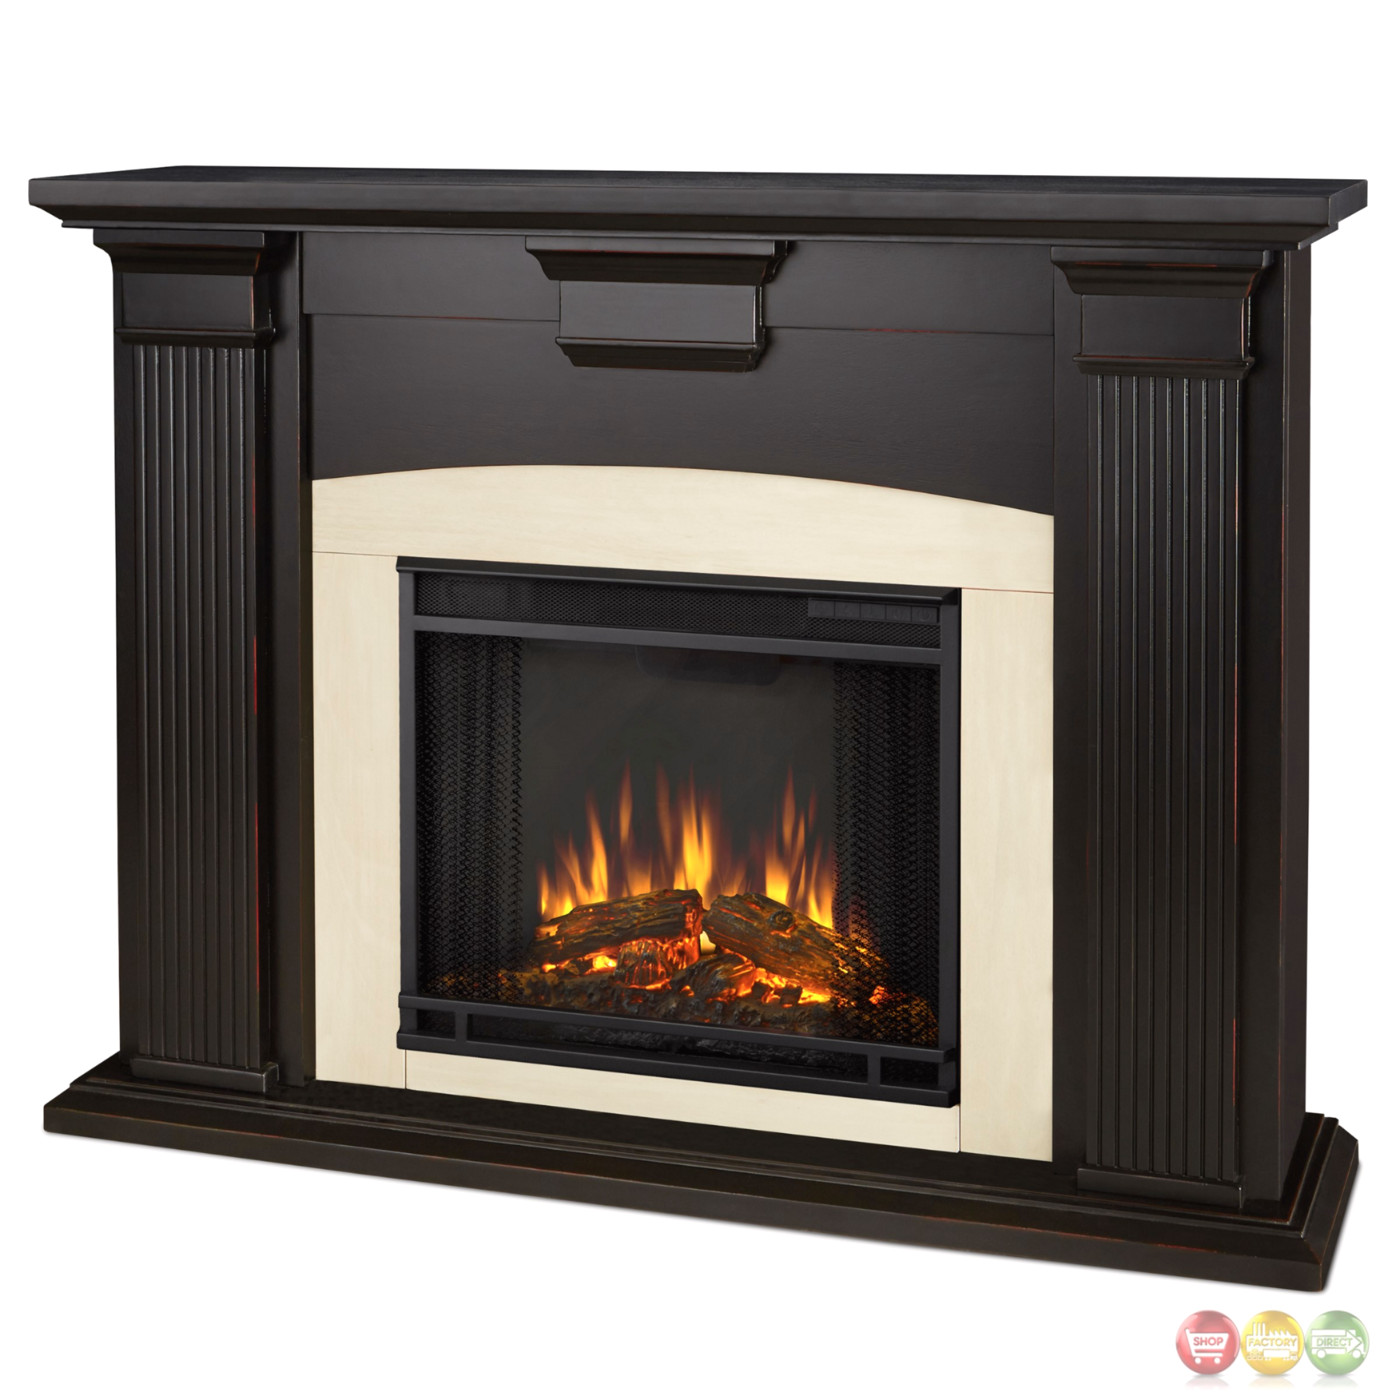 Adelaide Electric Led Heater Fireplace In Antique Black 4700btu 51x39